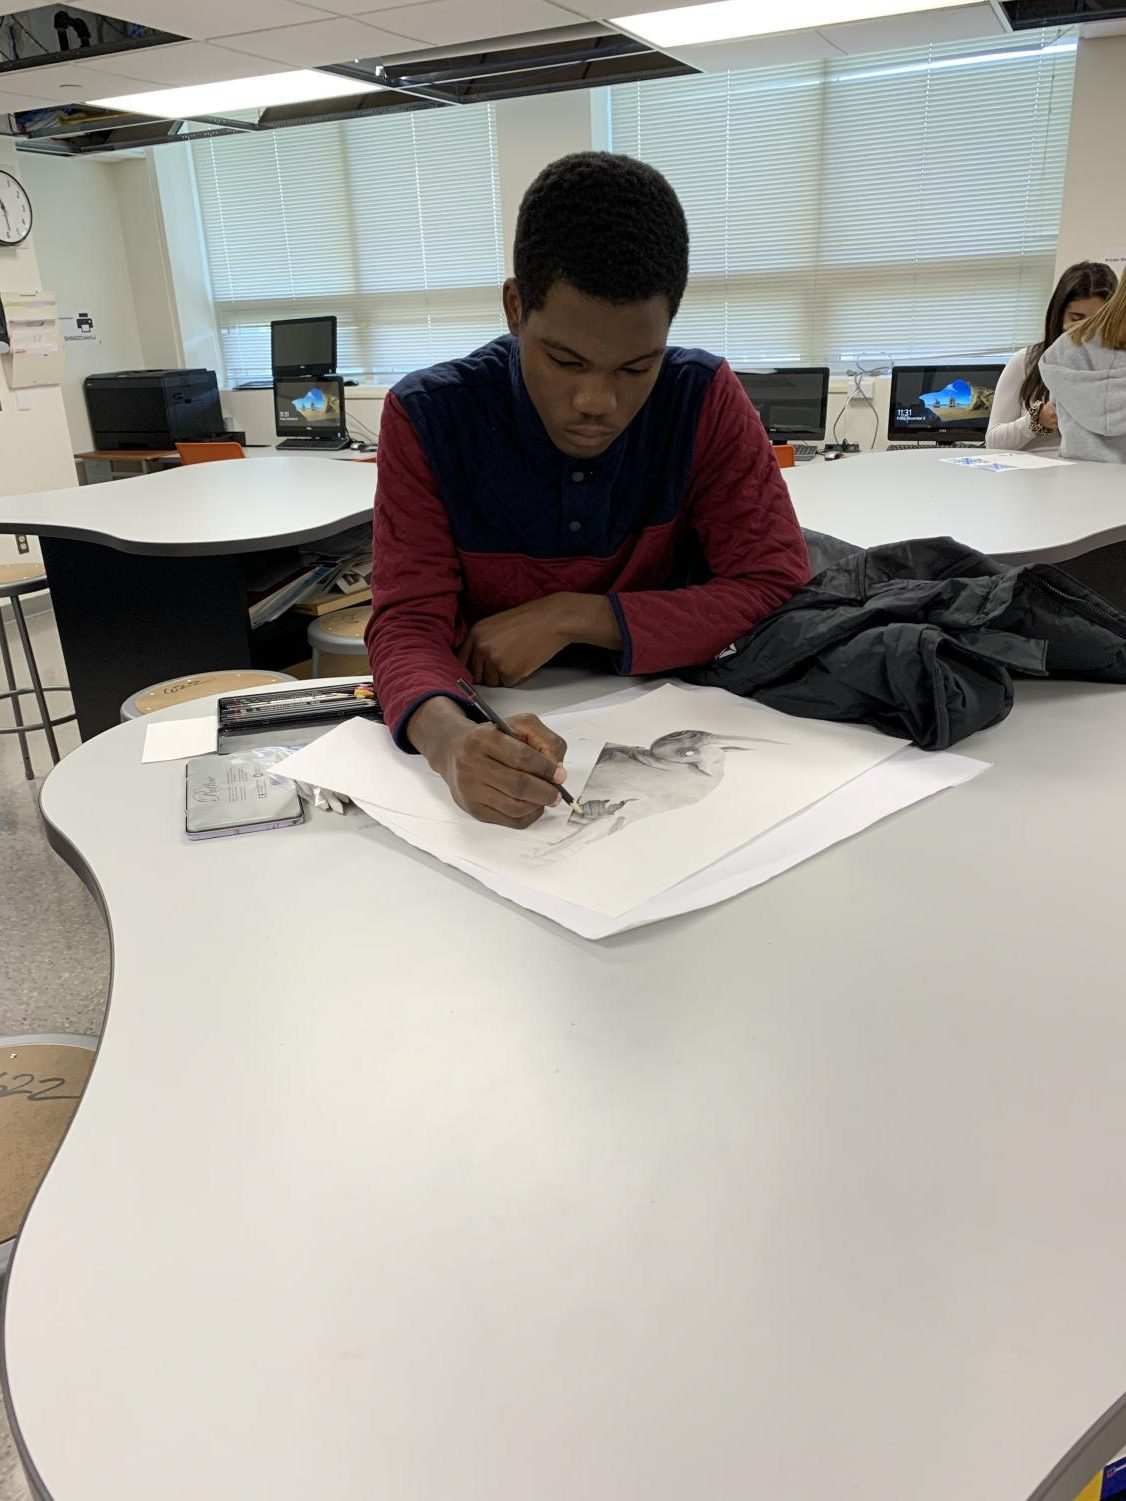 Rafaque Hughes demonstrates artistic ability